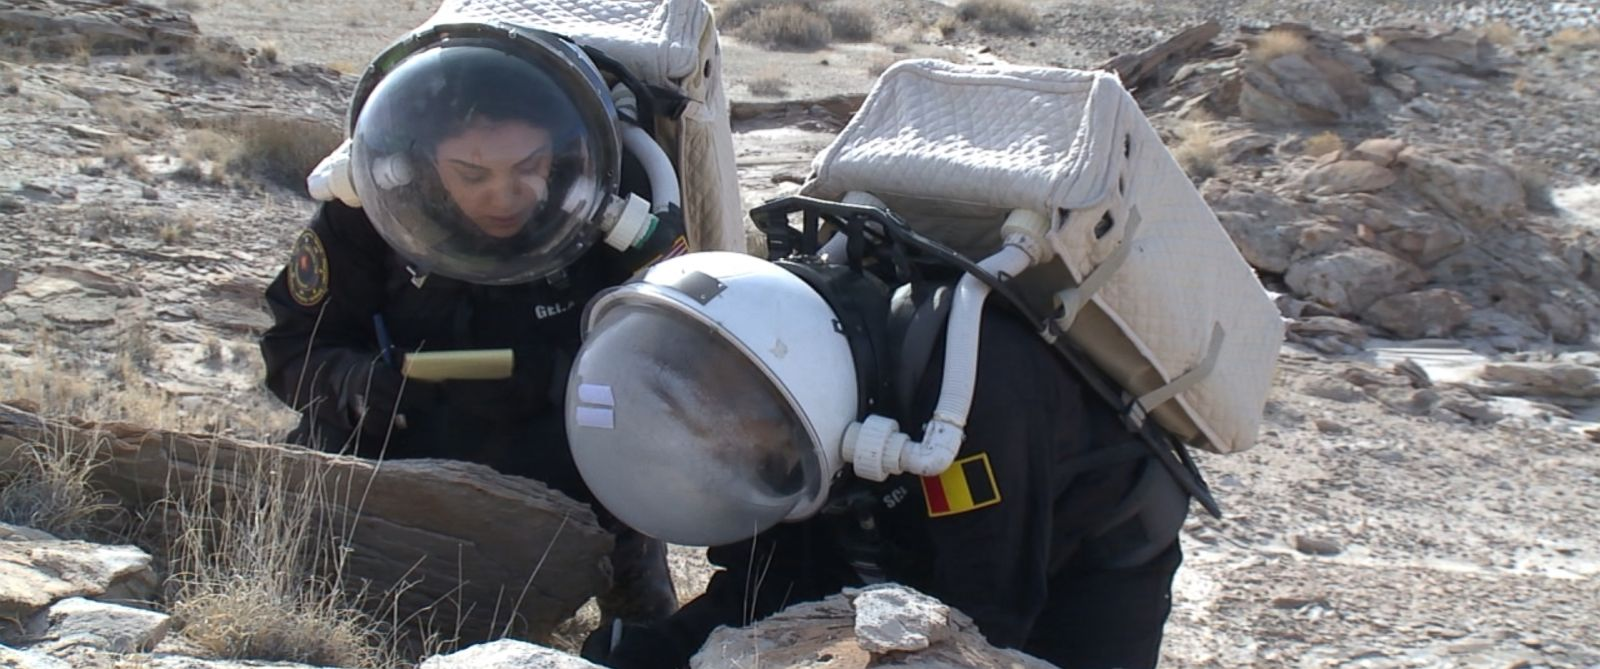 Kellie Gerardi (left) and a colleague are shown here training at the Mars Society's Desert Research Station in Utah.